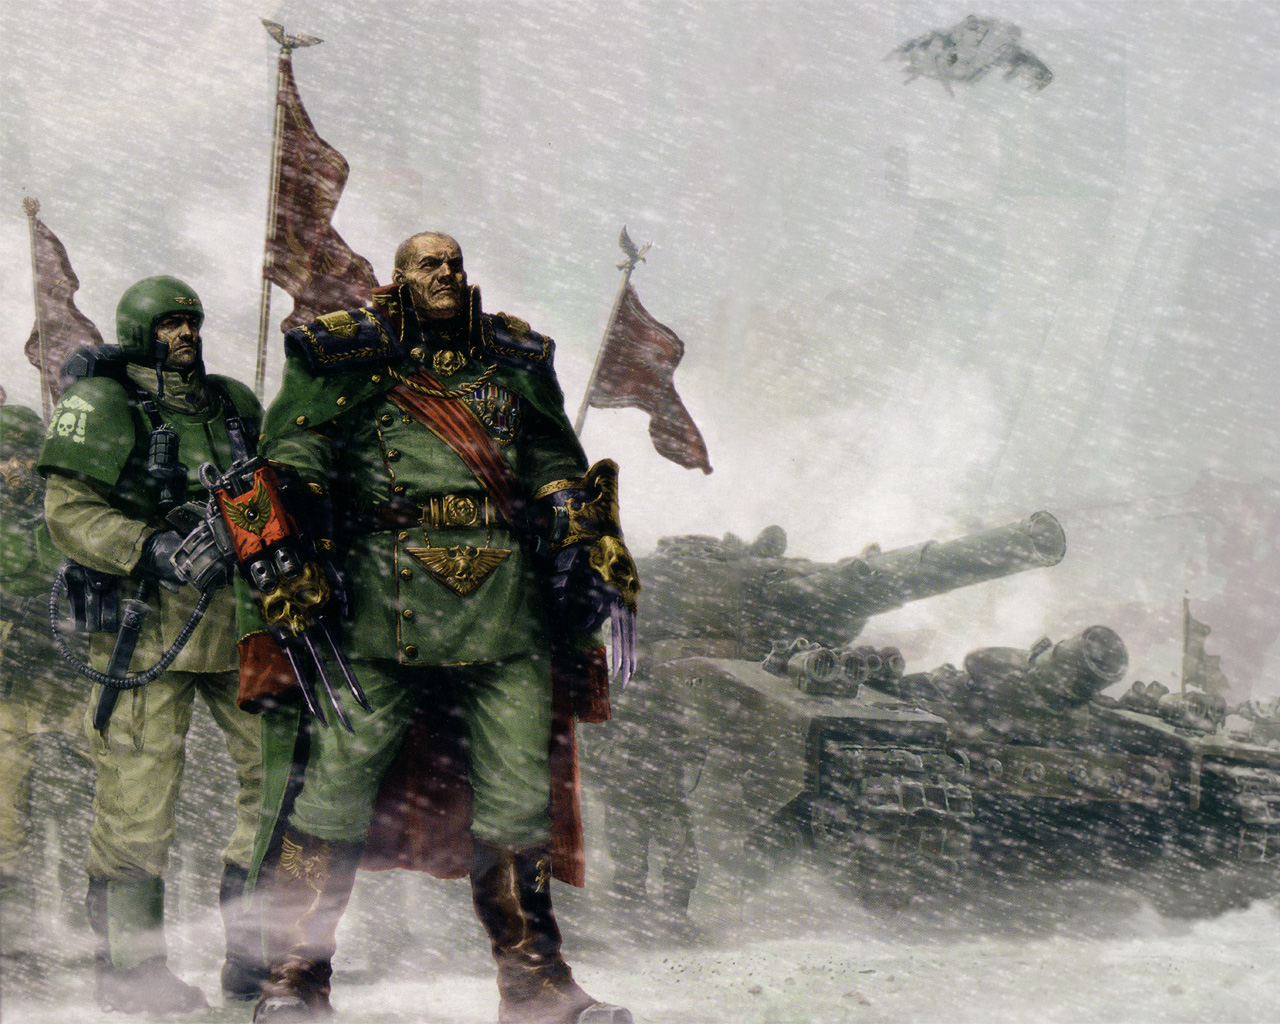 Wallpaper a day imperial soldiers tank warhammer 30k in the snow 1280x1024